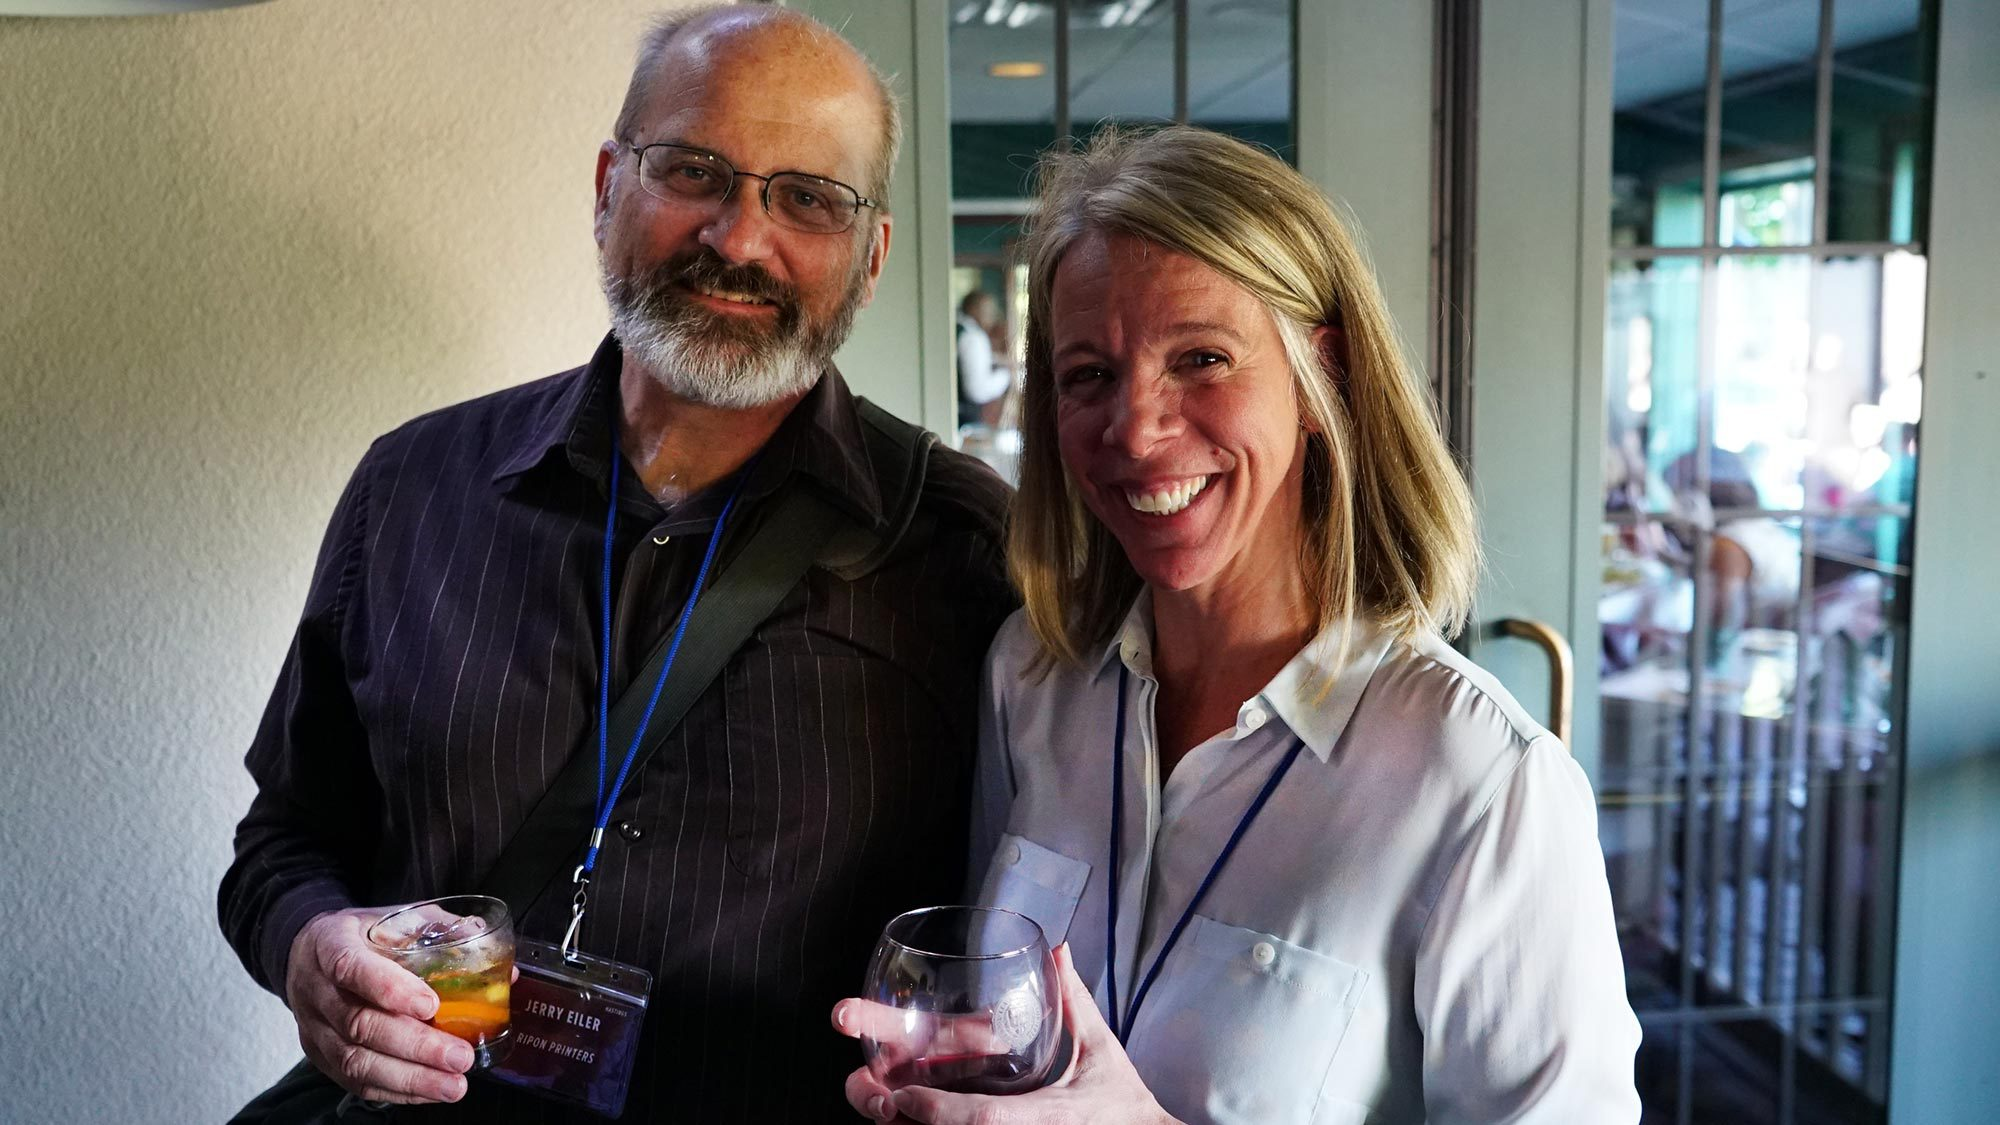 Jerry Eiler (left) and BCC Software's Dina Ergood enjoying some beverages after a successful day of presentations.